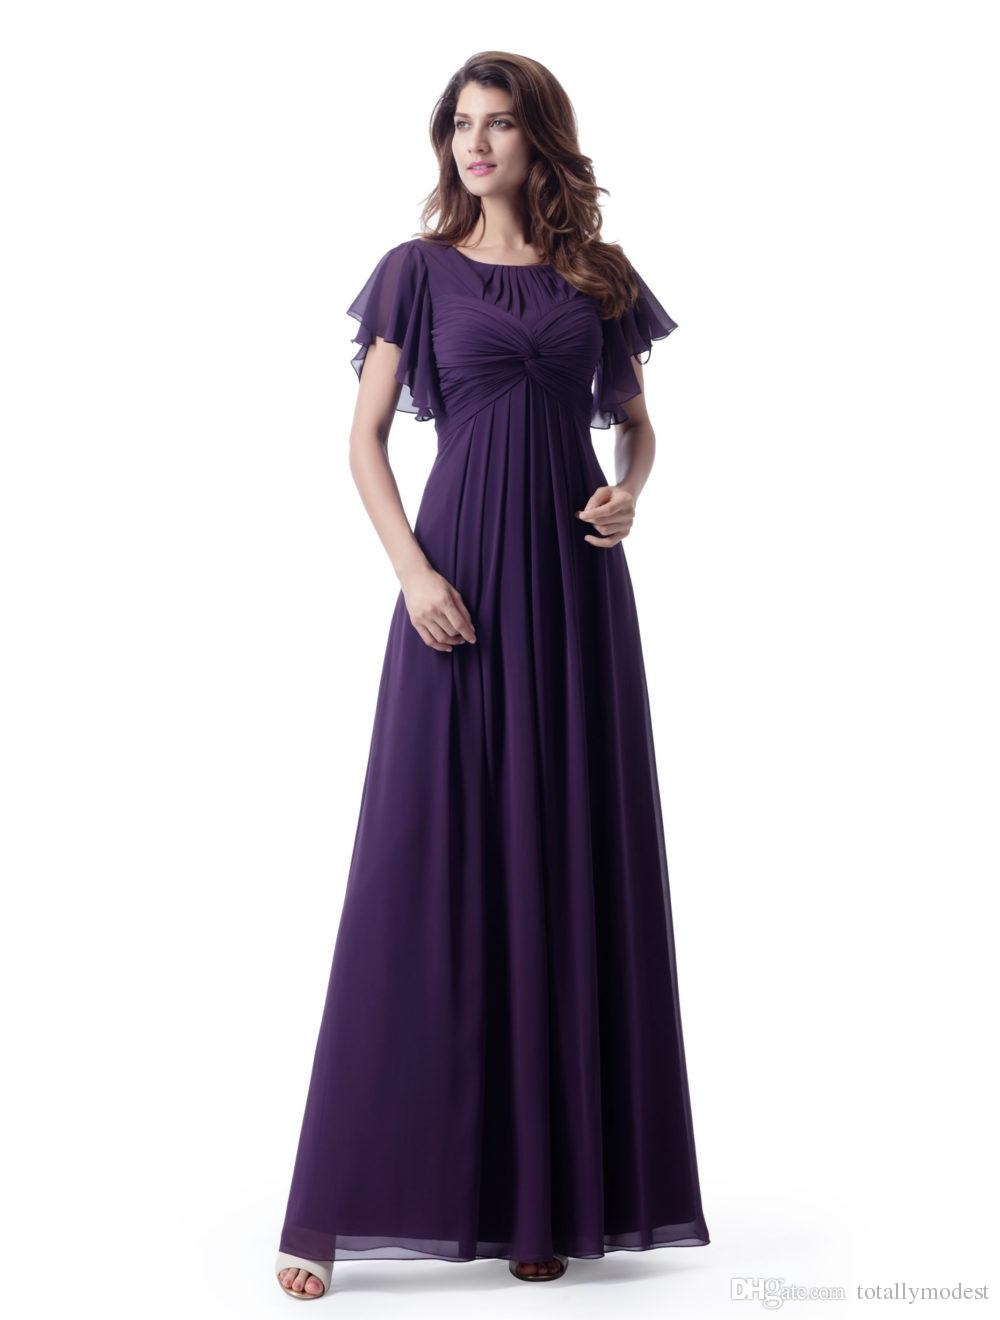 5b6b74e70ae0 Purple A Line Long Modest Bridesmaid Dresses With Flutter Sleeves Ruched  Chiffon Ankle Length LDS Bridesmaid Robes With Empire Waist Cadburys Purple  ...